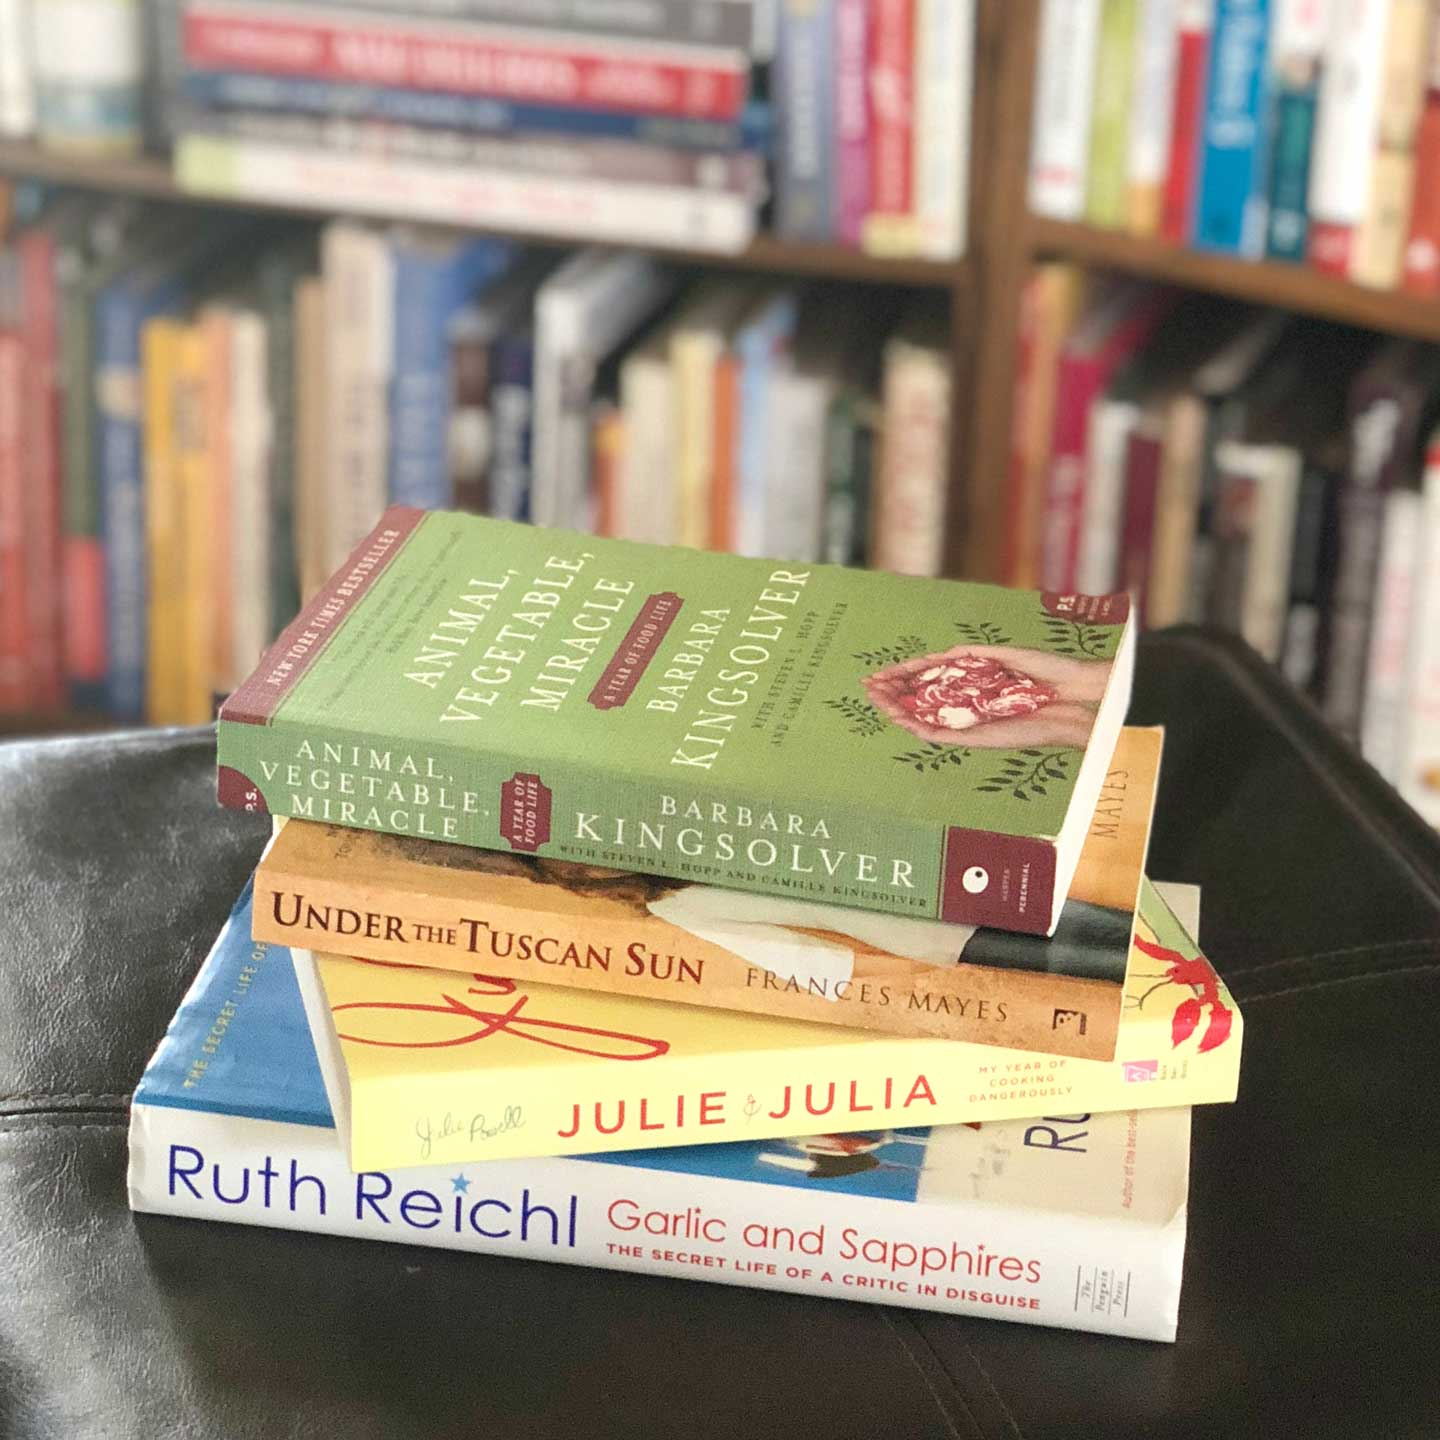 Books for food lovers don't have to be cookbooks! Are you looking for a Christmas gift idea for a cook, or someone who loves to read ... or both? These ideas are great for holiday gifts, and also just for your own book wish list!